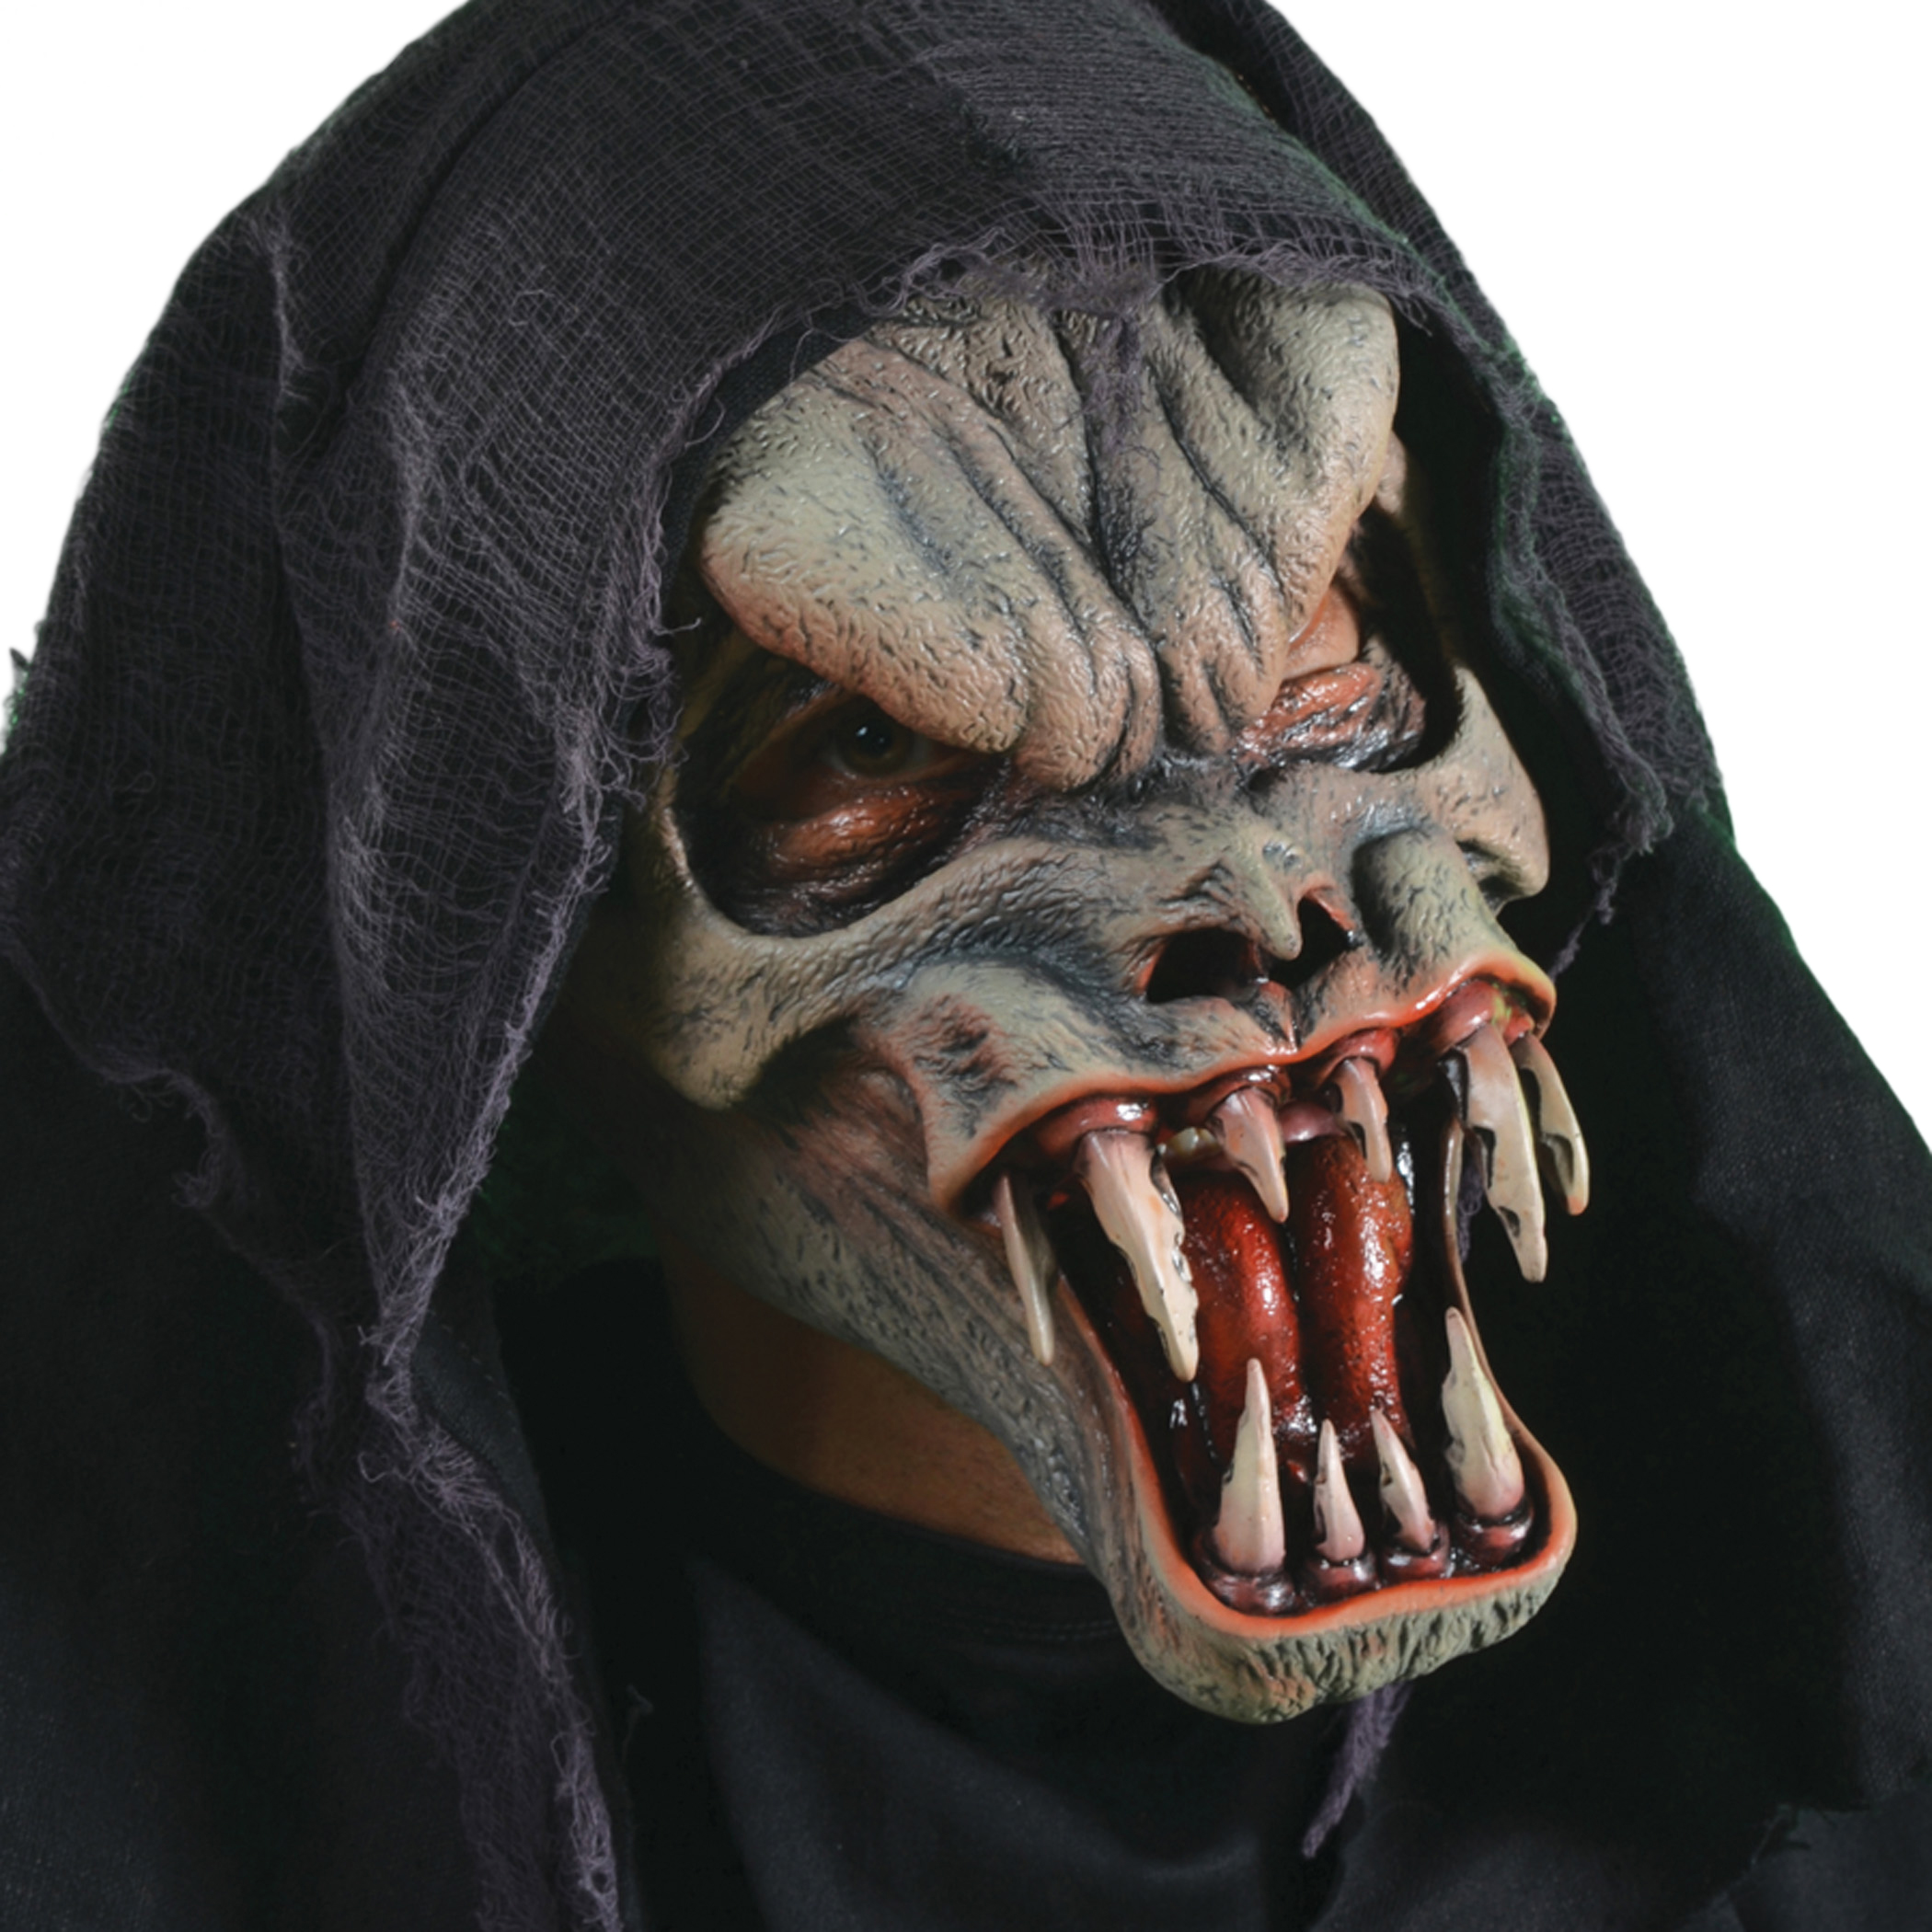 Zagone Fanged Death With Hood Monster Ghoul Full Head Mask, Grey, One Size